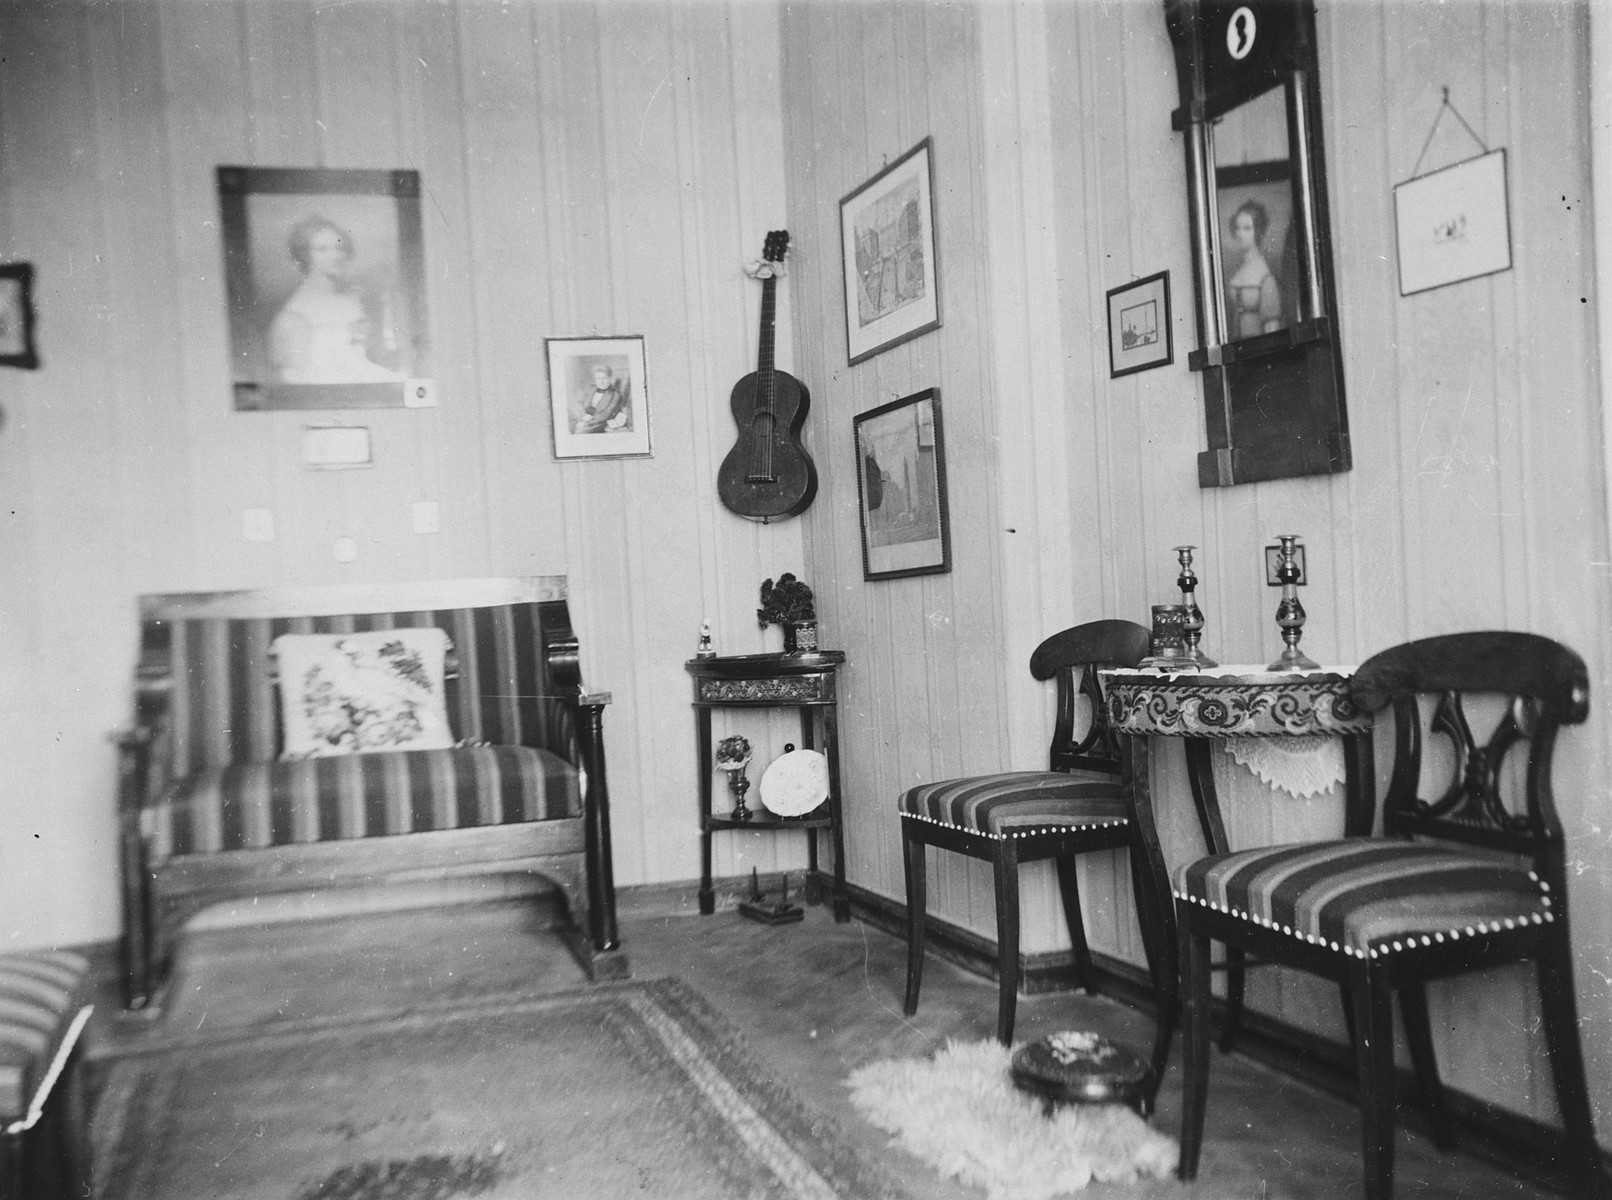 Interior view of the living-room of the Wolff family in Braunsberg, Germany.